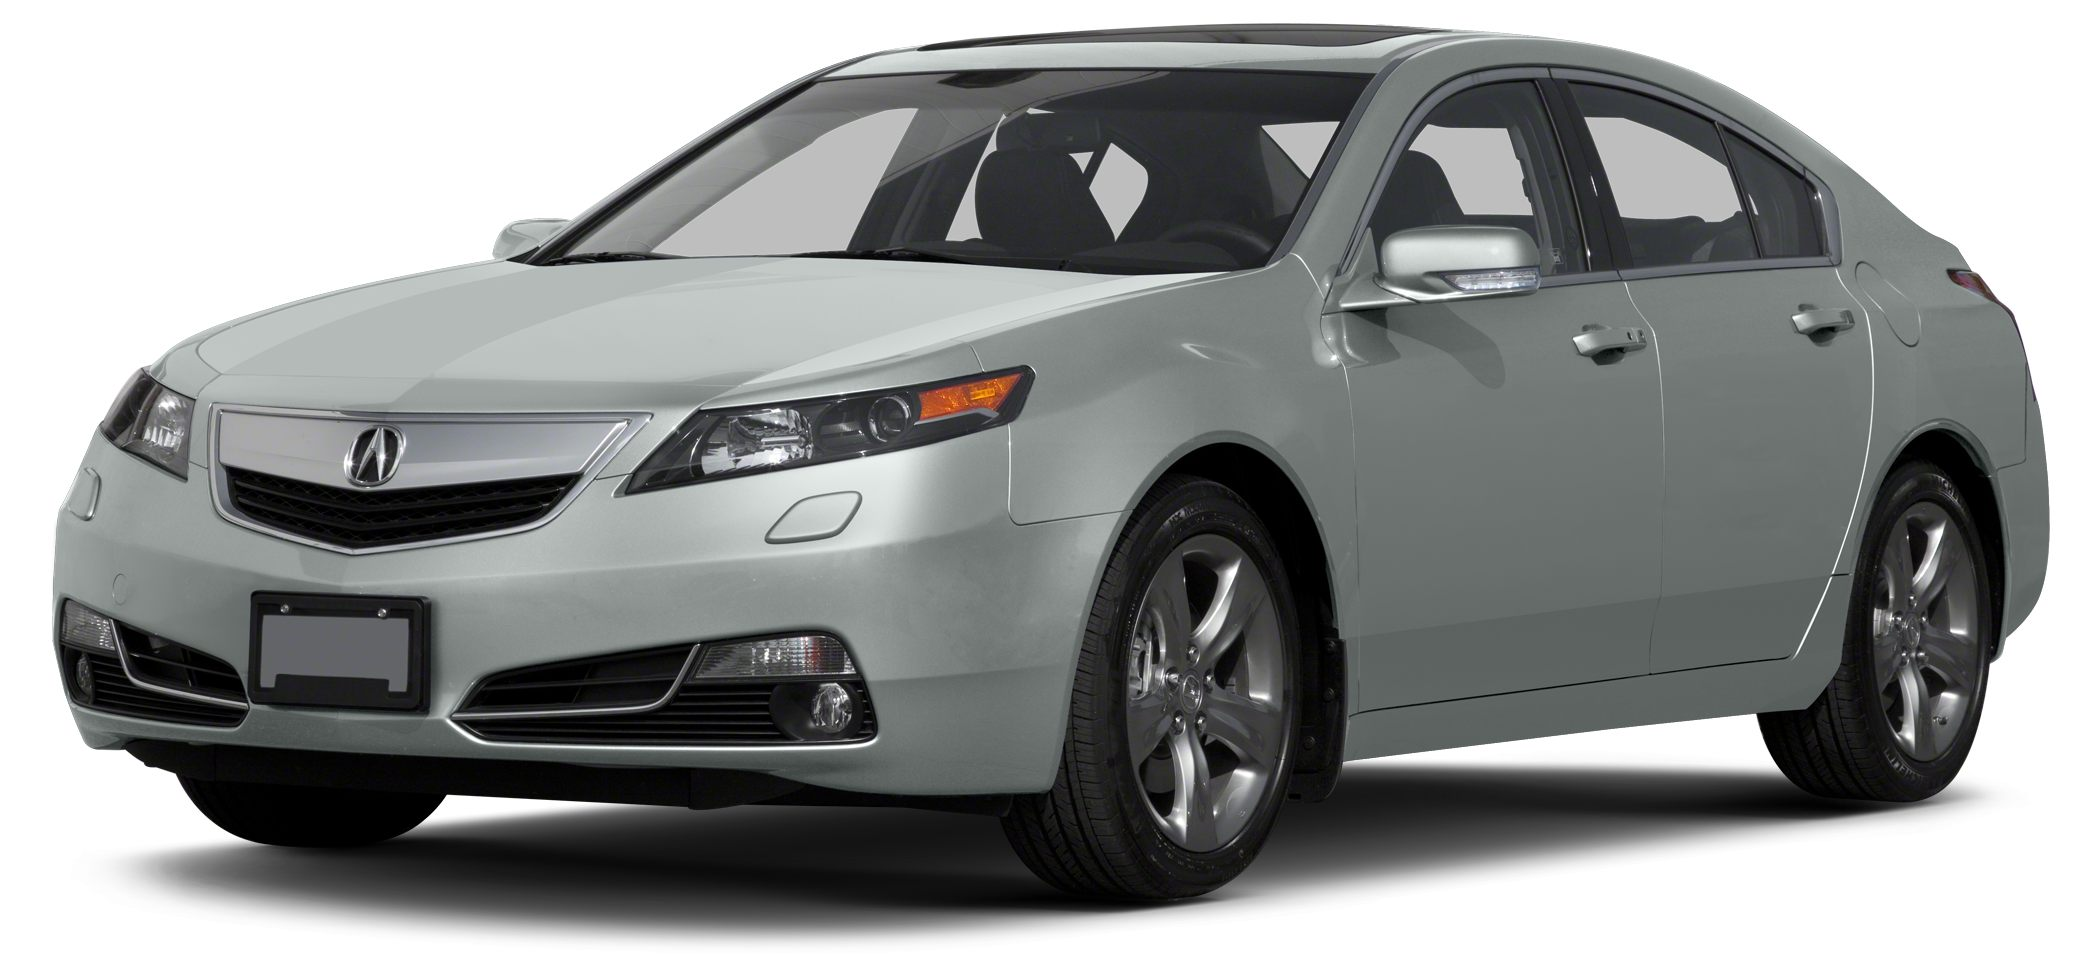 2013 Acura TL 35 Land a bargain on this certified 2013 Acura TL BASE before someone else takes it